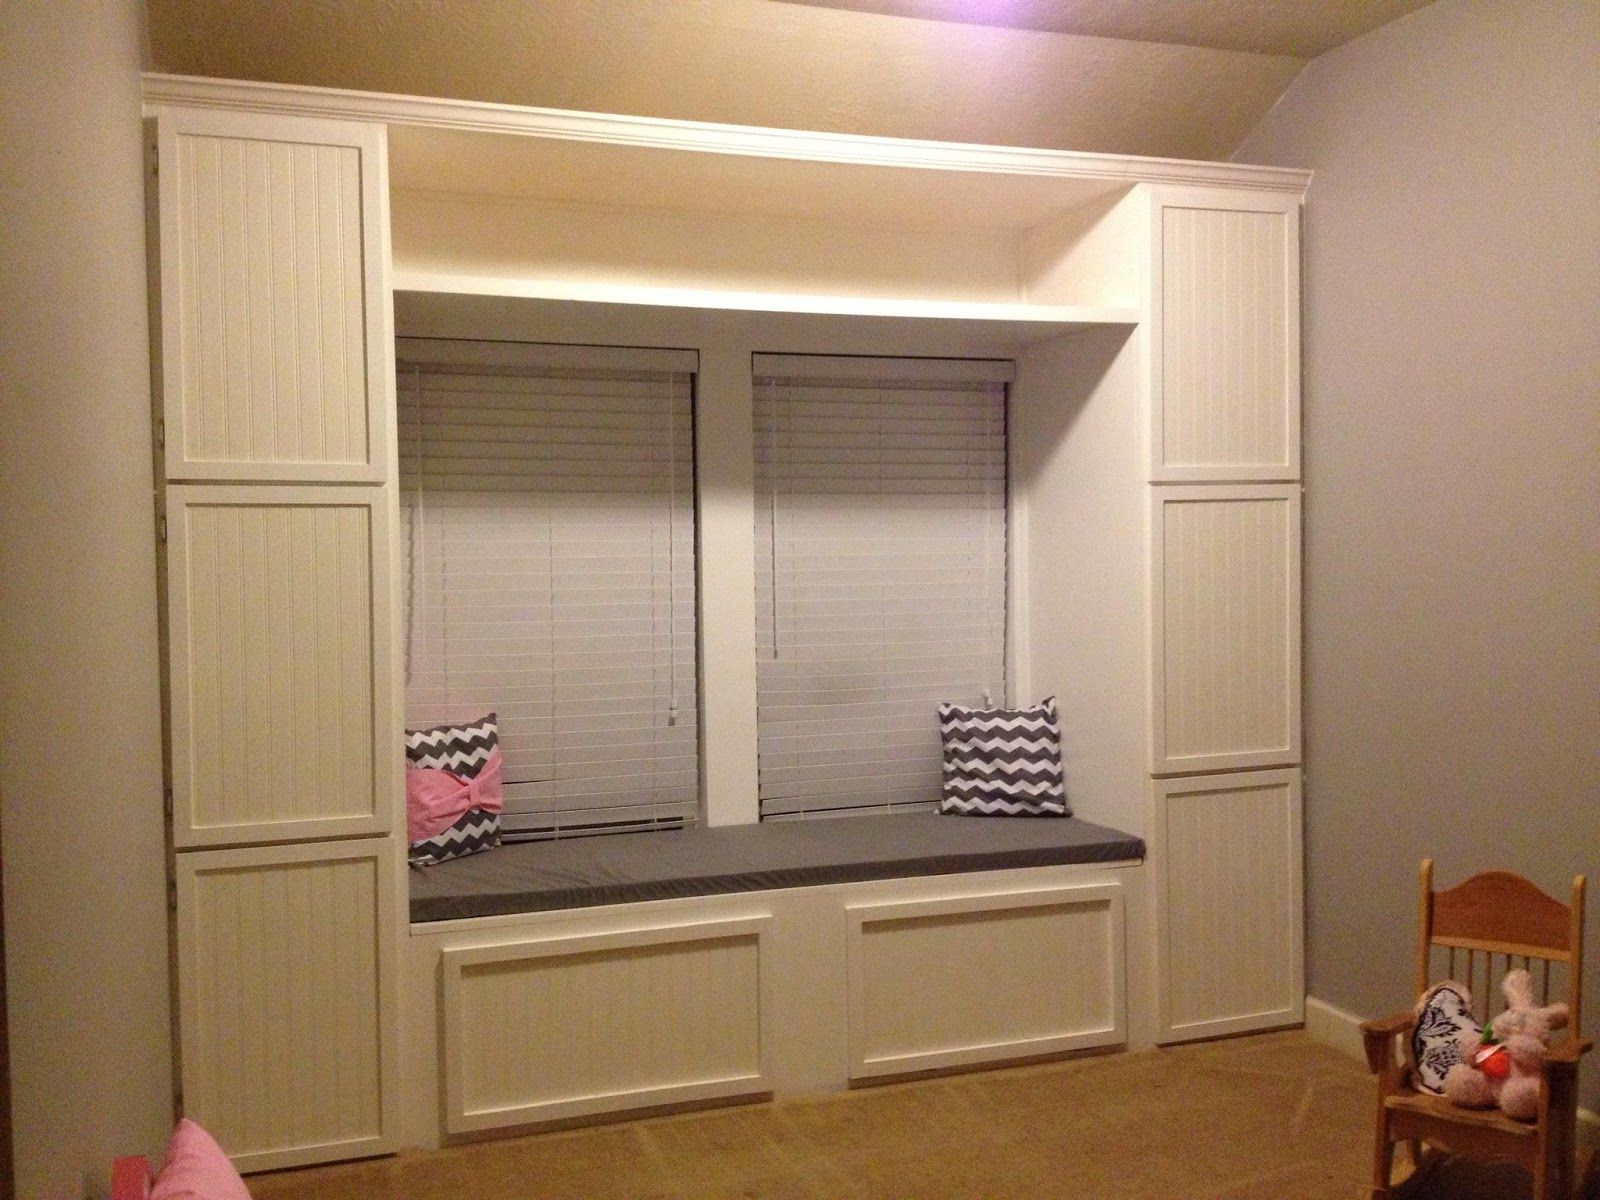 Reading Nook/Storage Diy projects home improvement